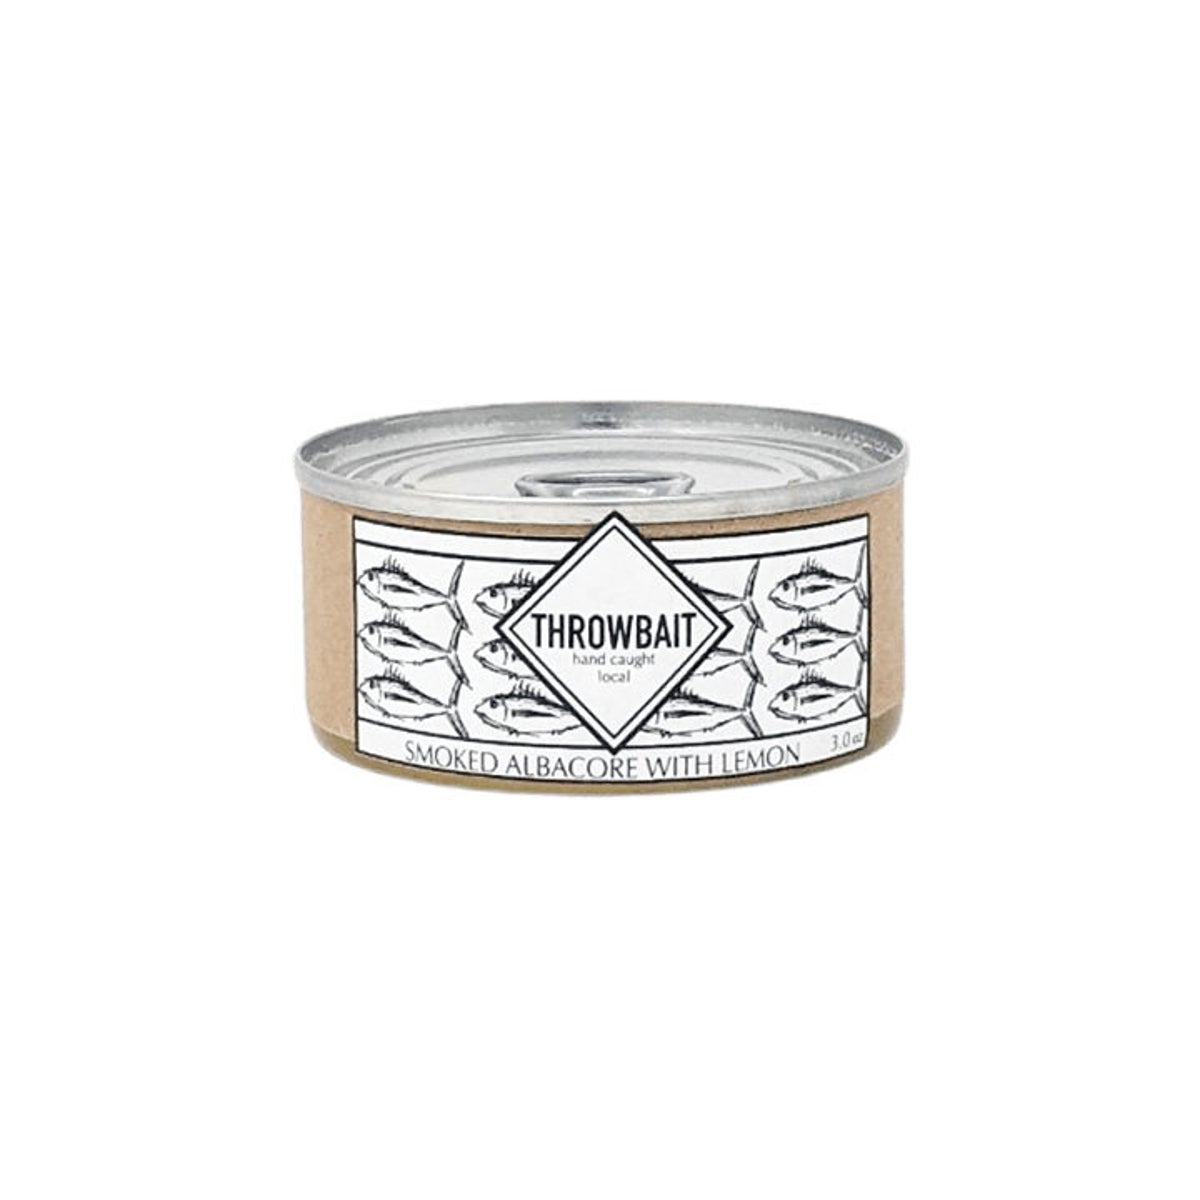 Best Canned Tuna Option_ Throwbait Smoked Albacore with Lemon